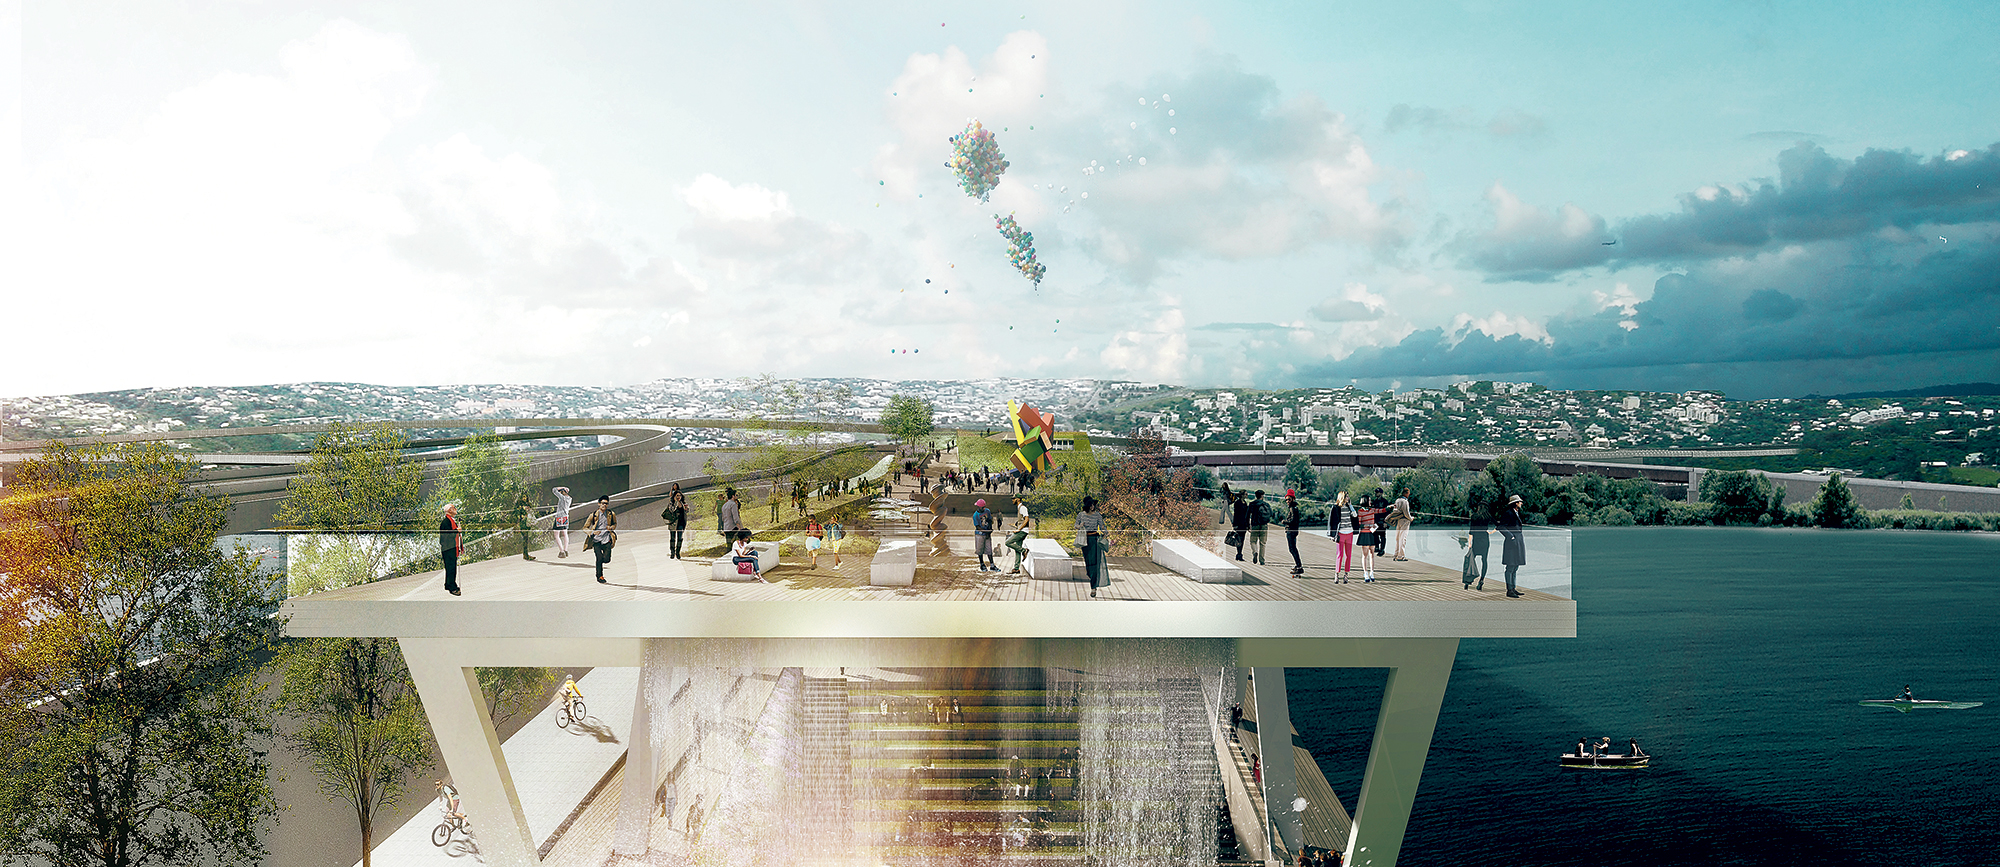 Renderings courtesy of OMA/Olin.